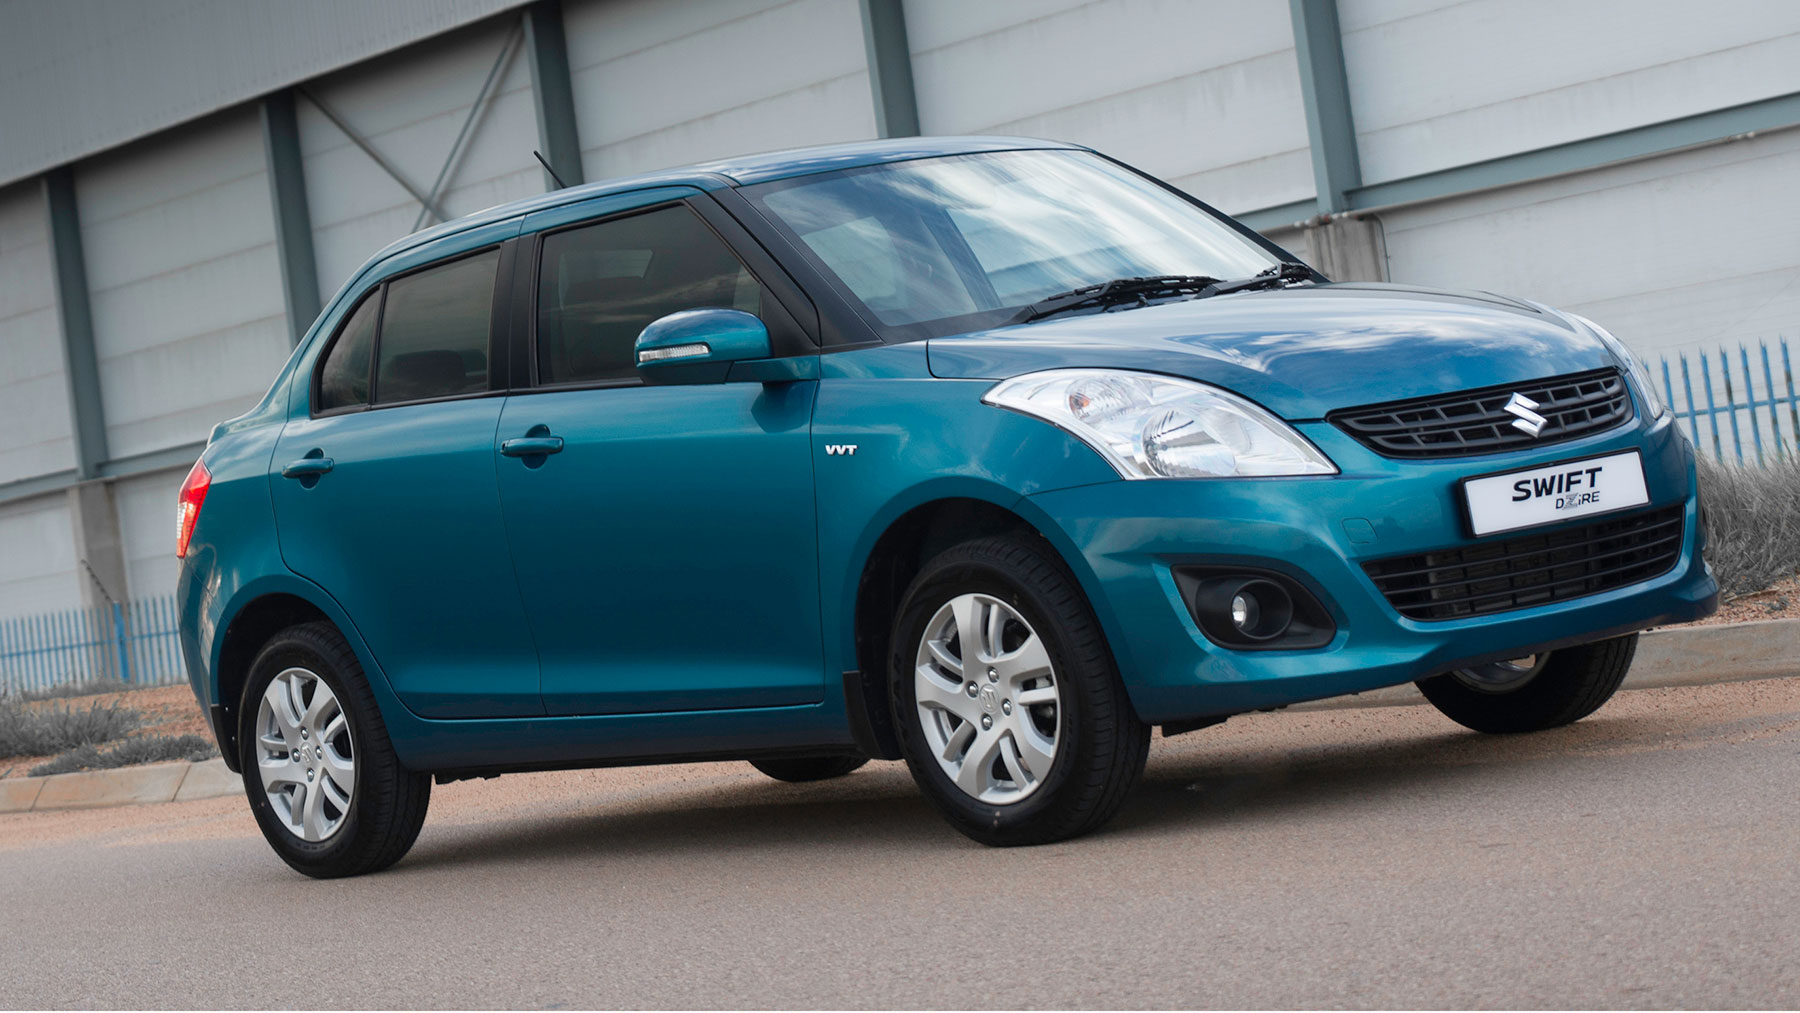 MARUTI SWIFT DZIRE Rentals in Bangalore